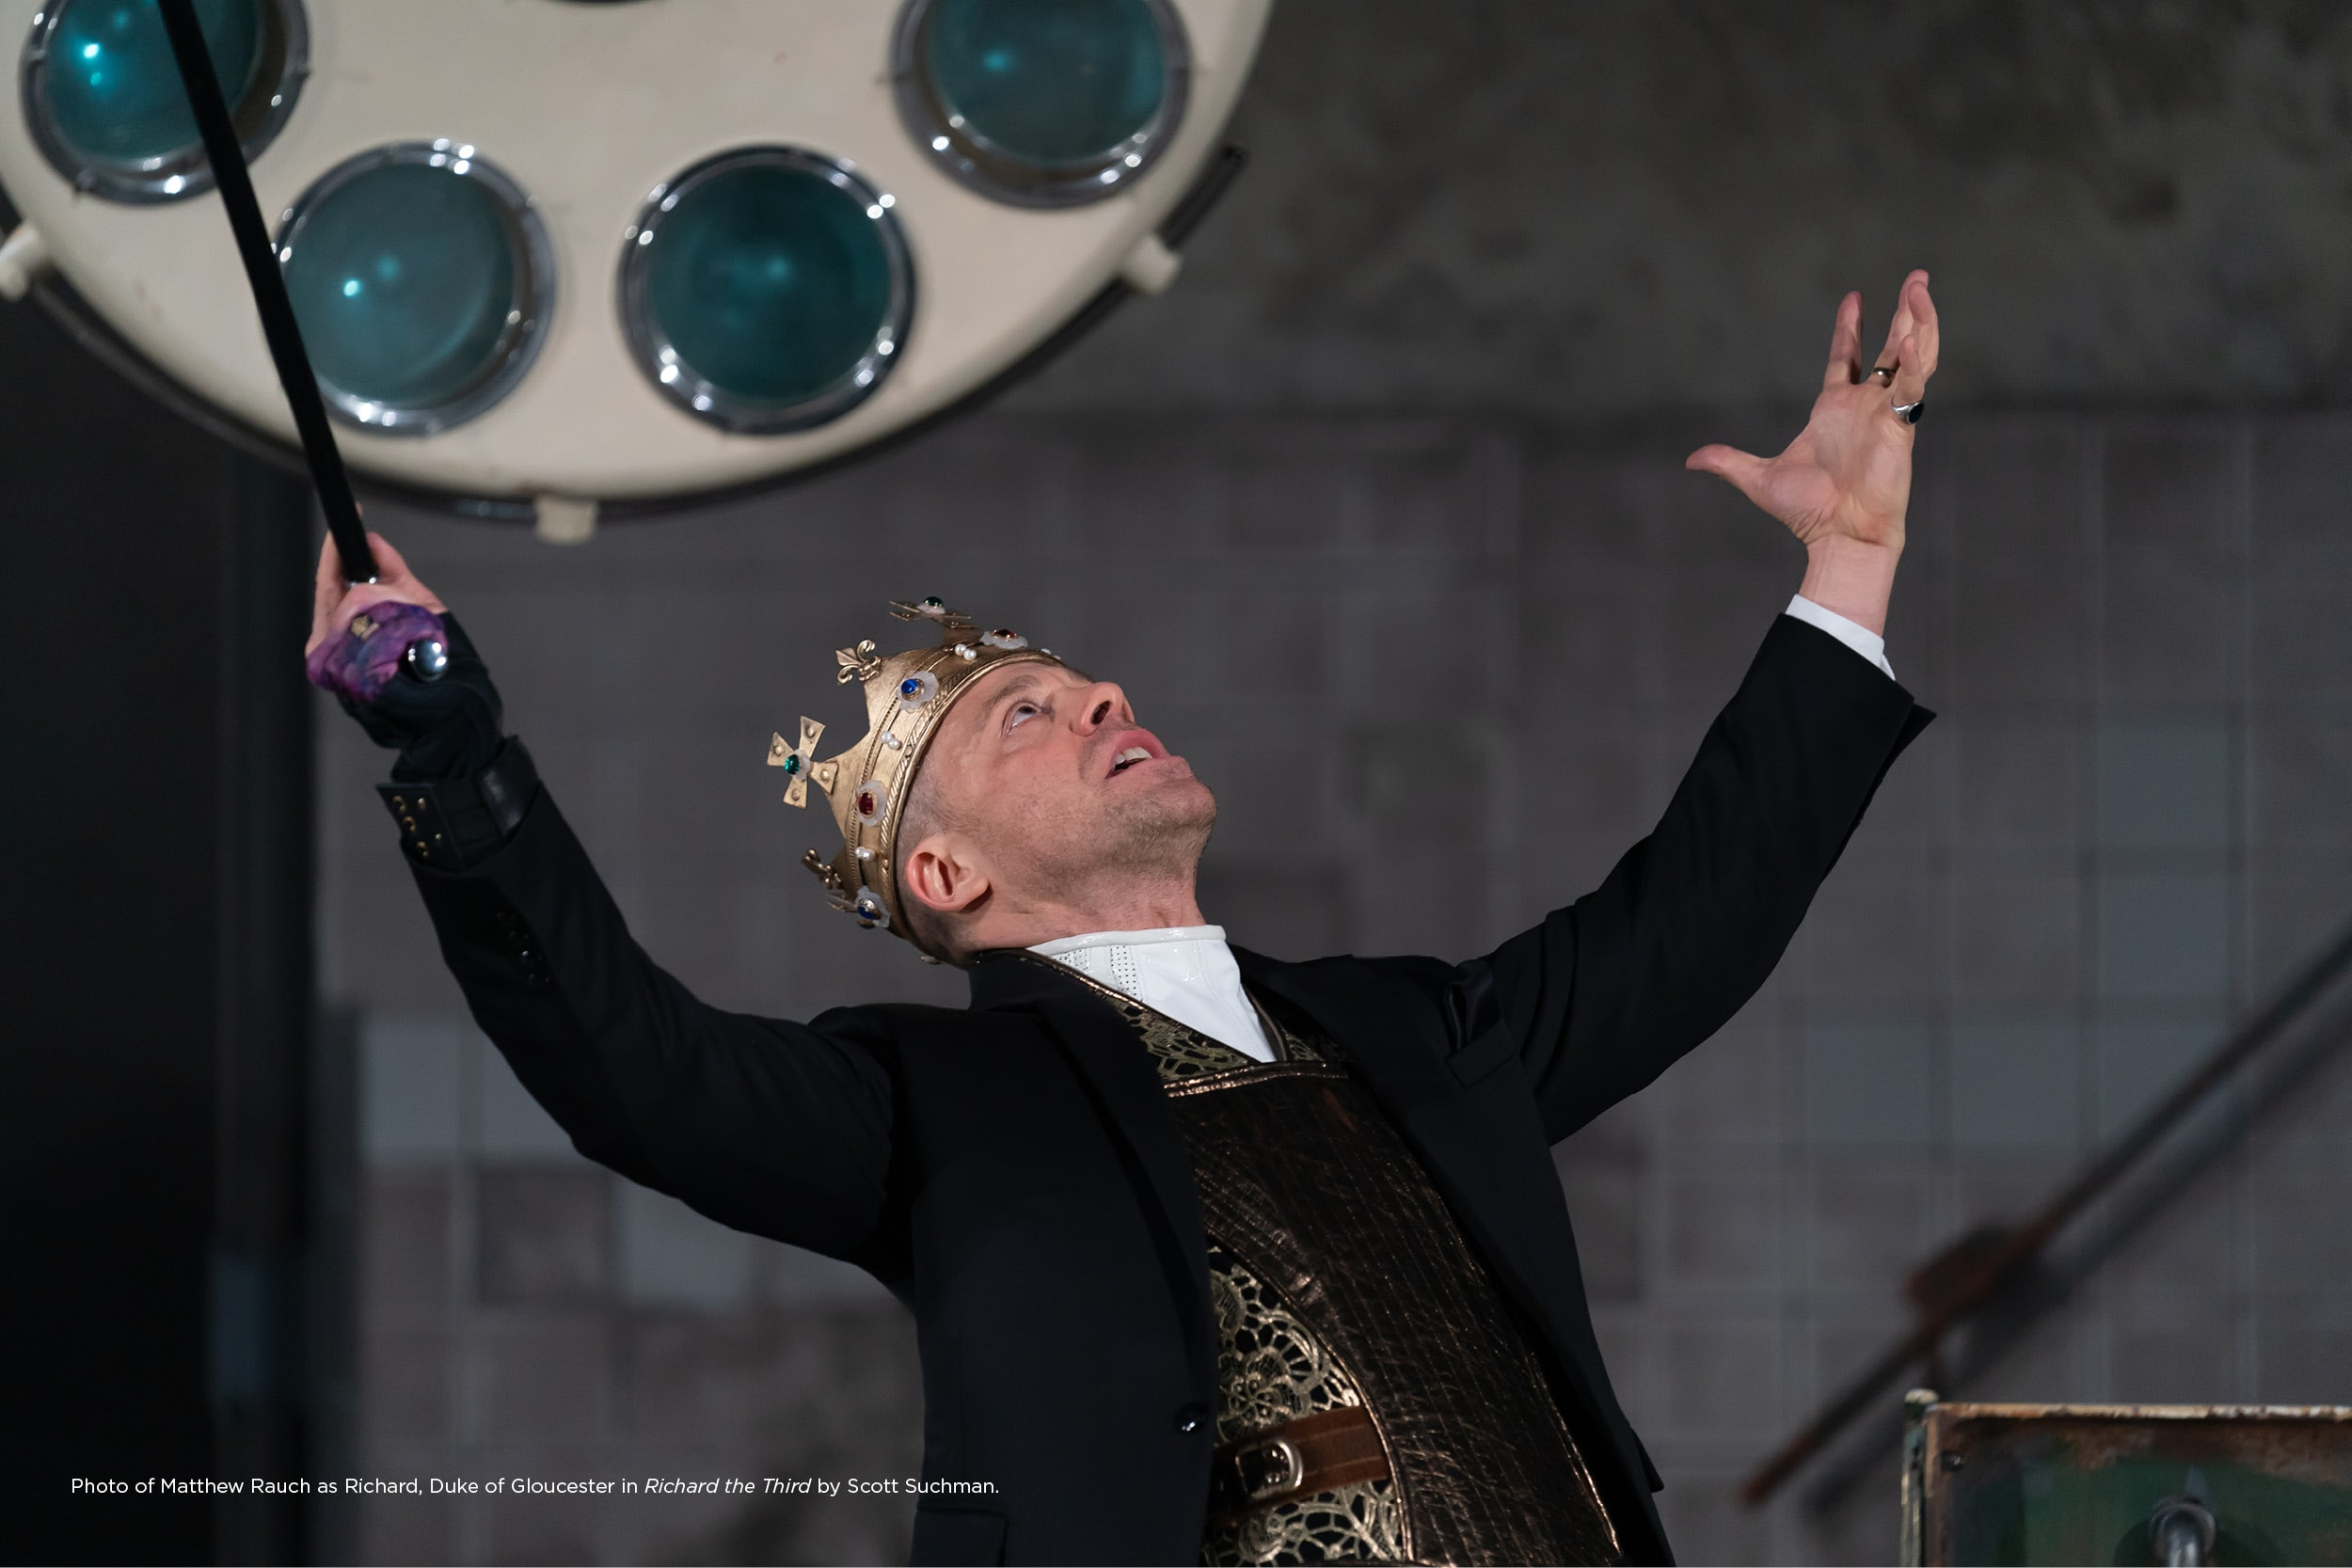 Matthew Rauch as Richard, Duke of Gloucester in Shakespeare Theatre Company's production of Richard the Third. Photo by Scott Suchman.